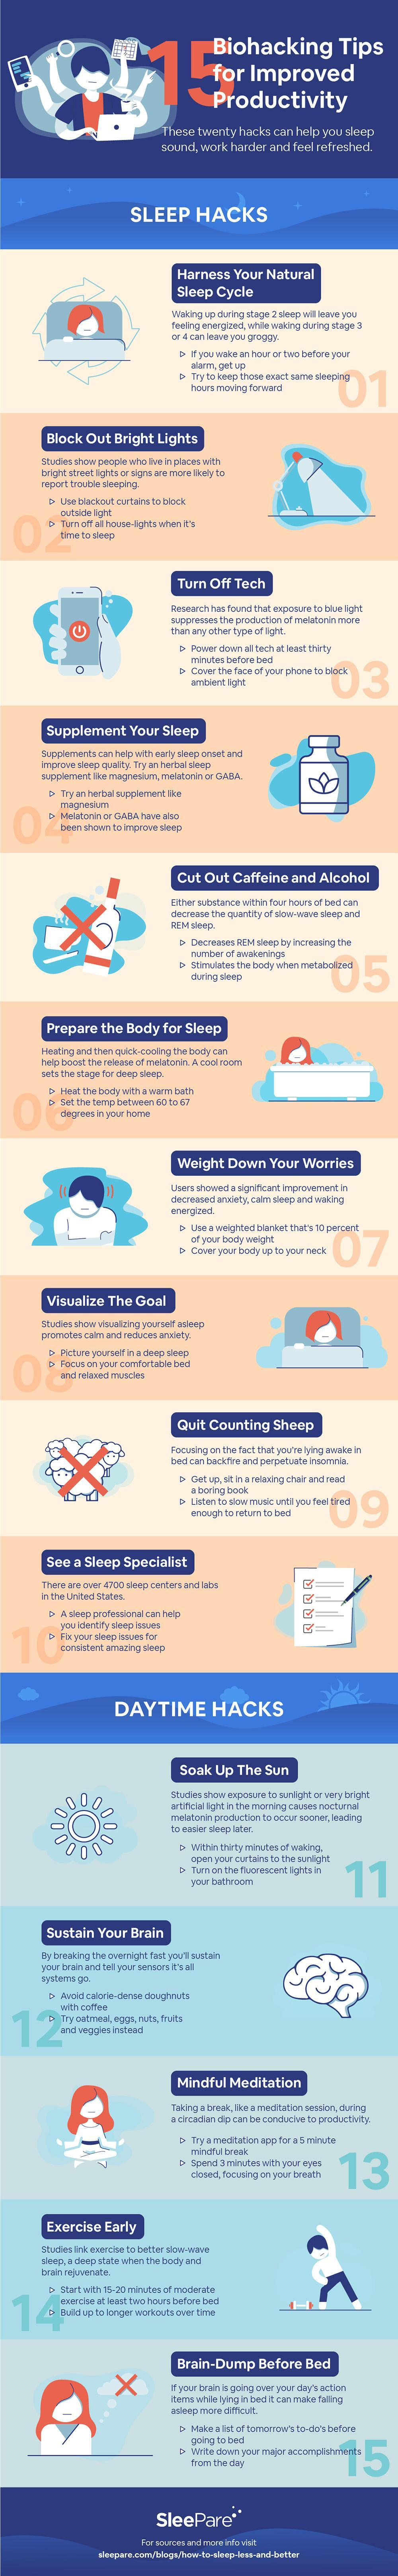 sleepare 15 biohacking tips infographic